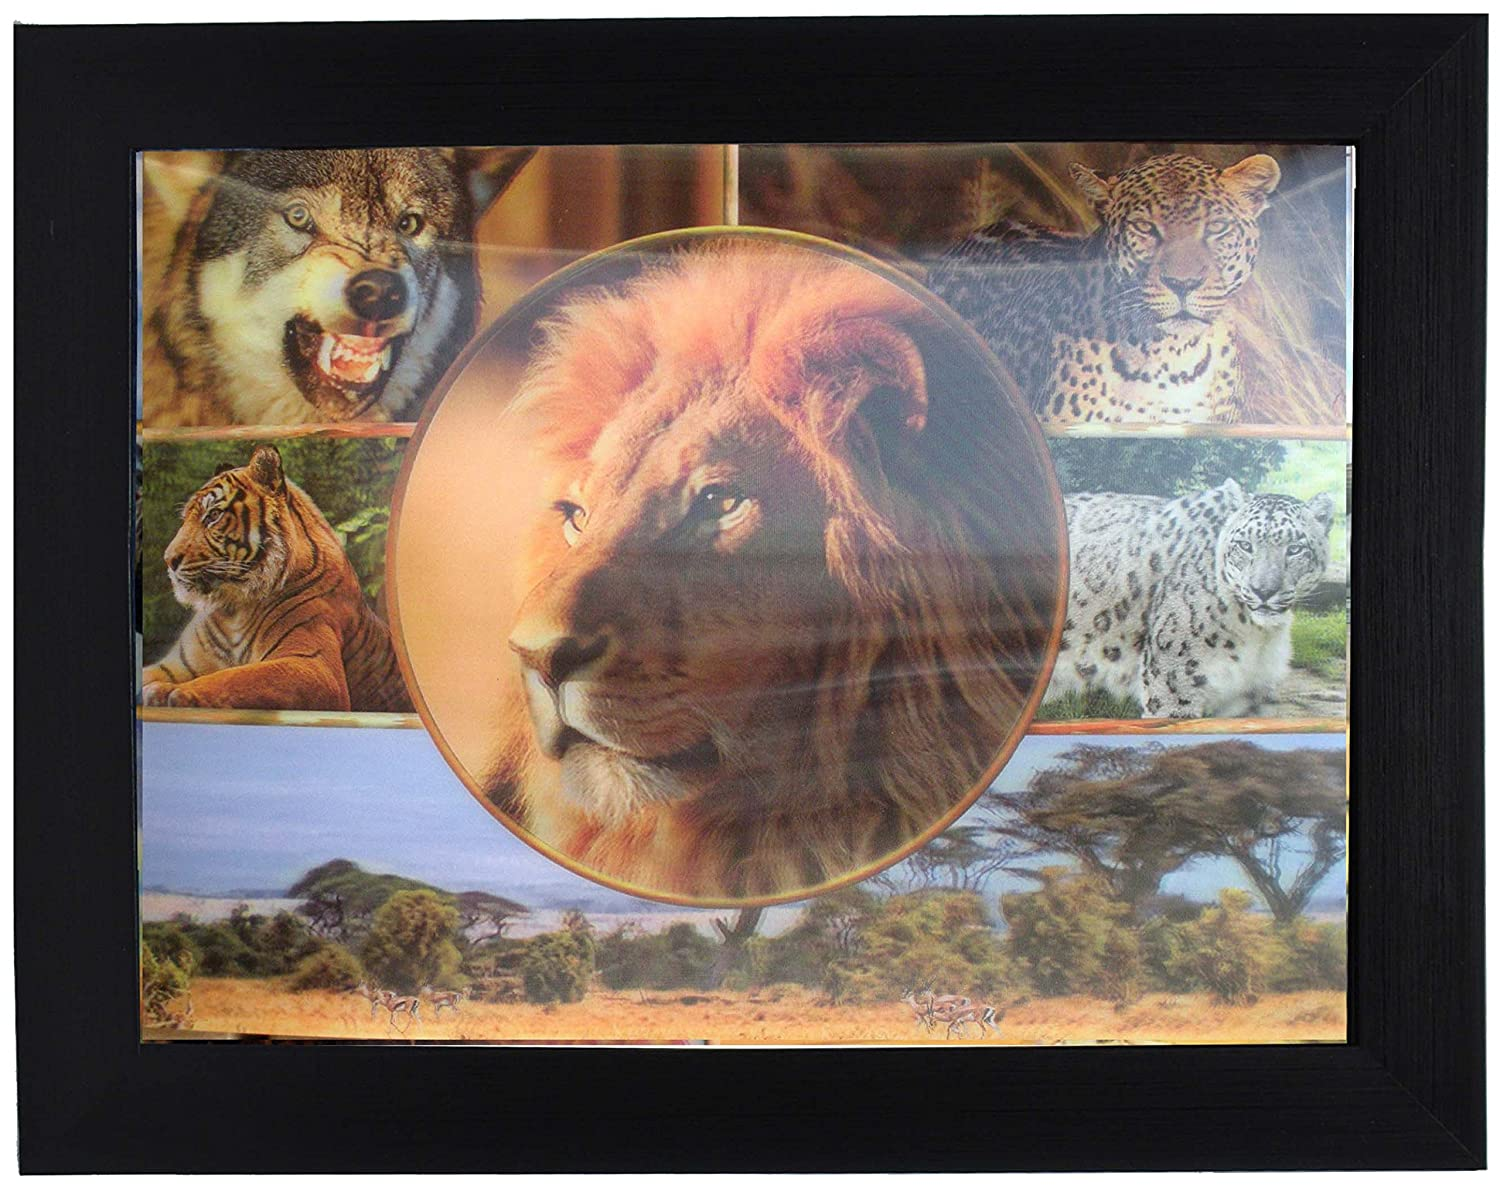 Amazon 3d lenticular framed 3d picture poster artwork wall amazon 3d lenticular framed 3d picture poster artwork wall decor holographic pics optical illusion animated image lion tiger wolf jeuxipadfo Images